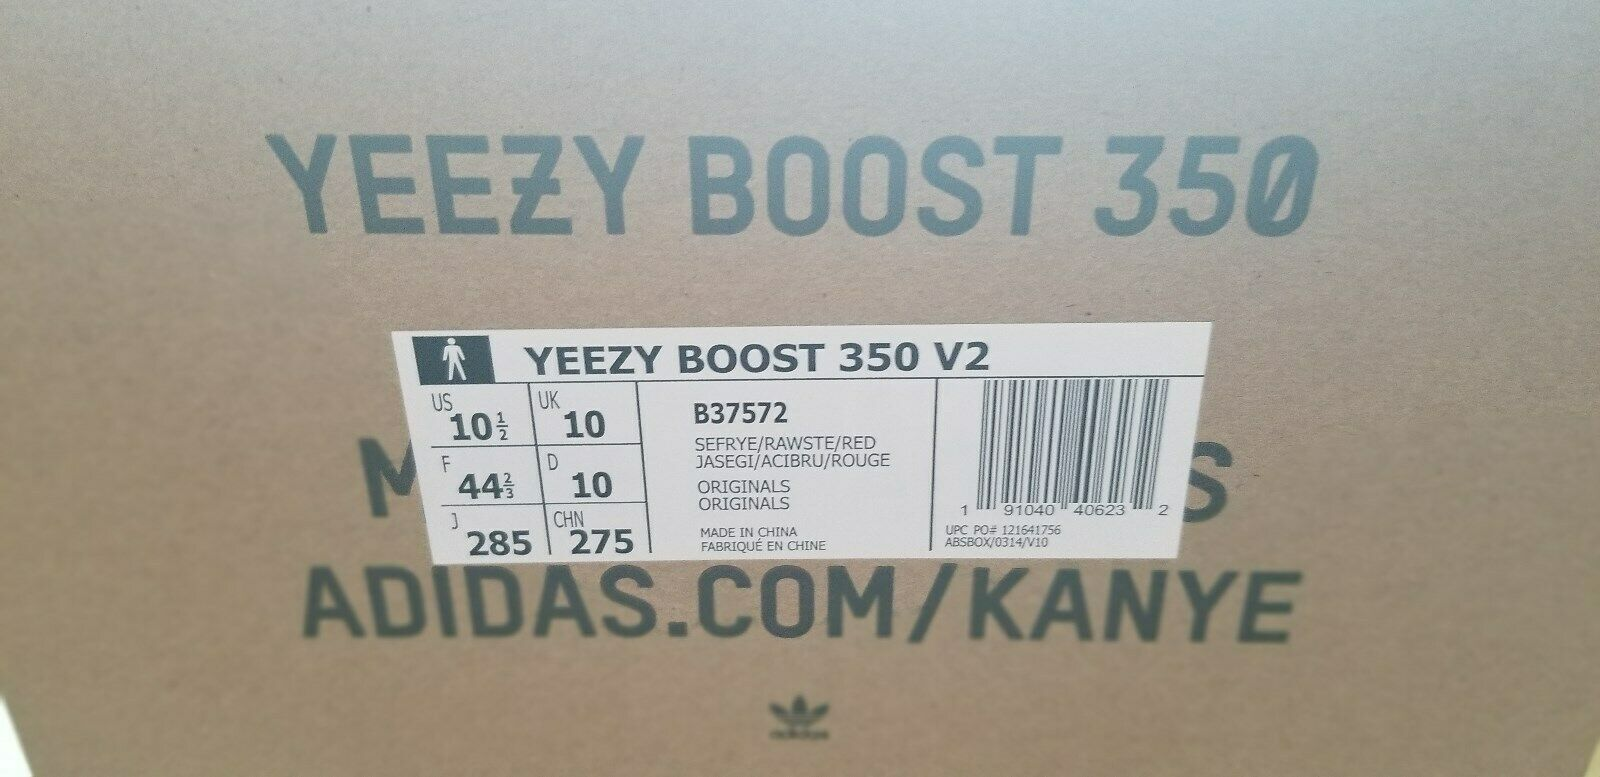 NEW ADIDAS YEEZY 350 V2 SEMI FROZEN YELLOW B37572 BRAND NEW IN THE BOX image 4